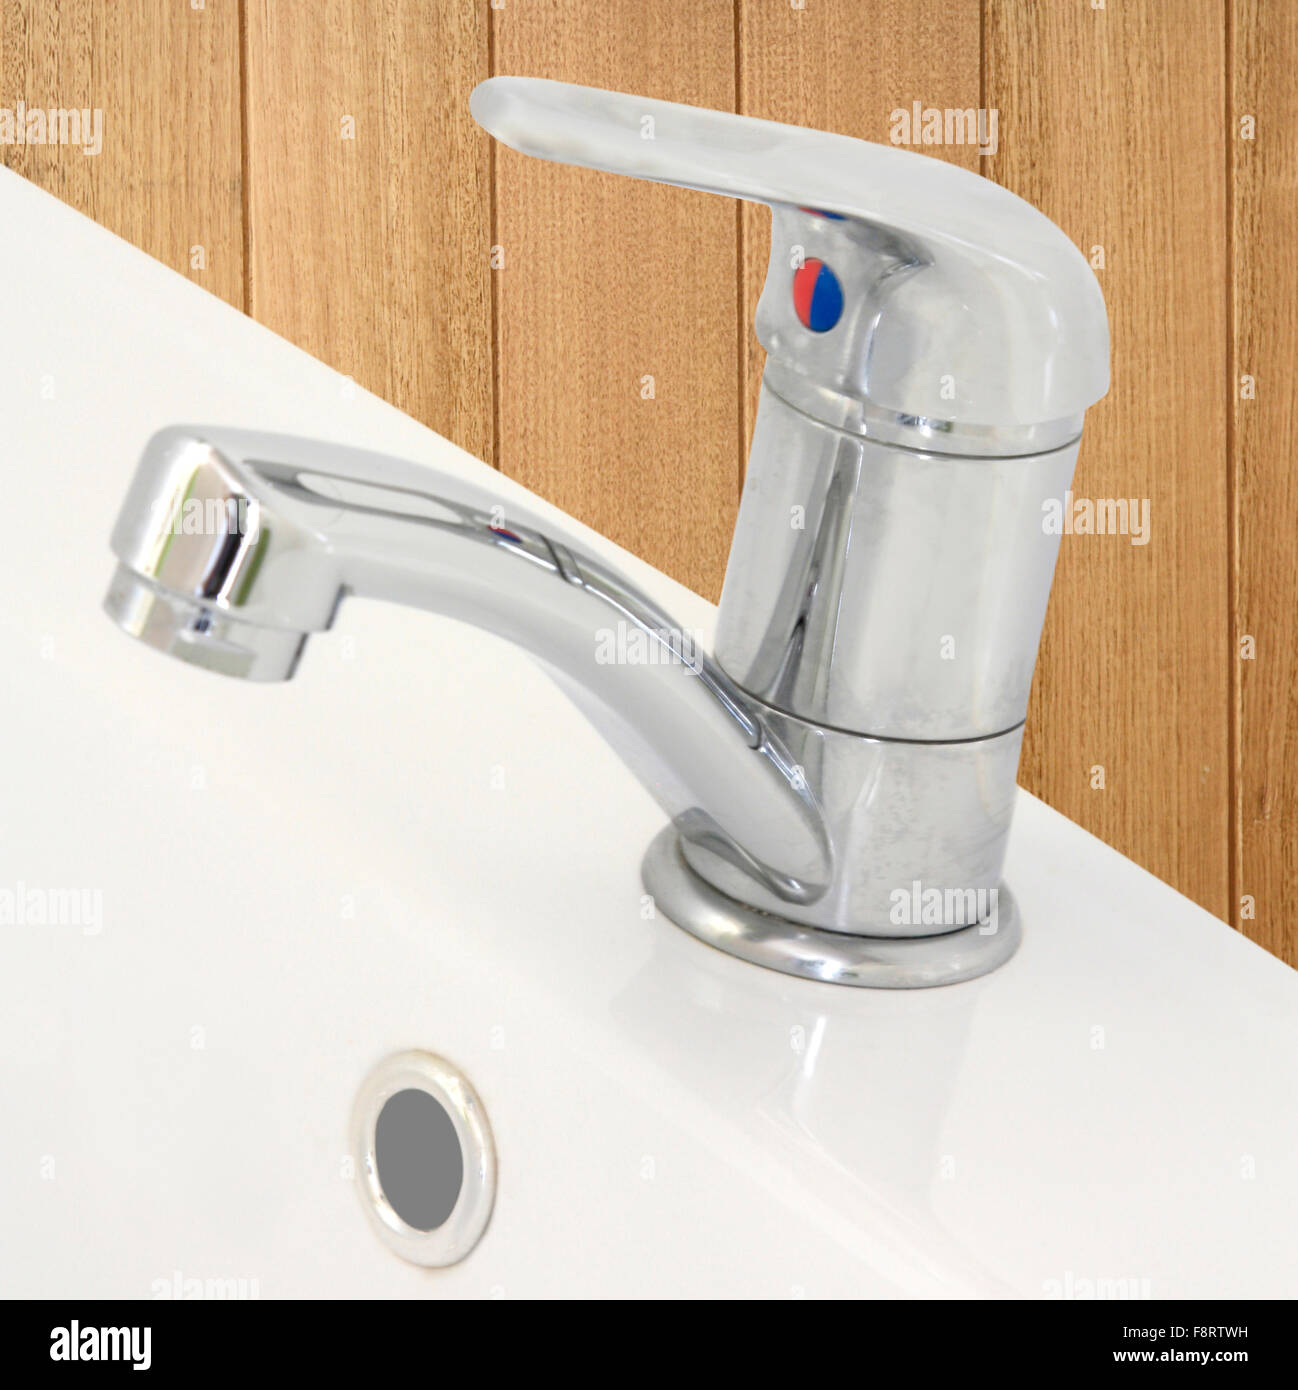 stainless steel tap and hand basin - Stock Image